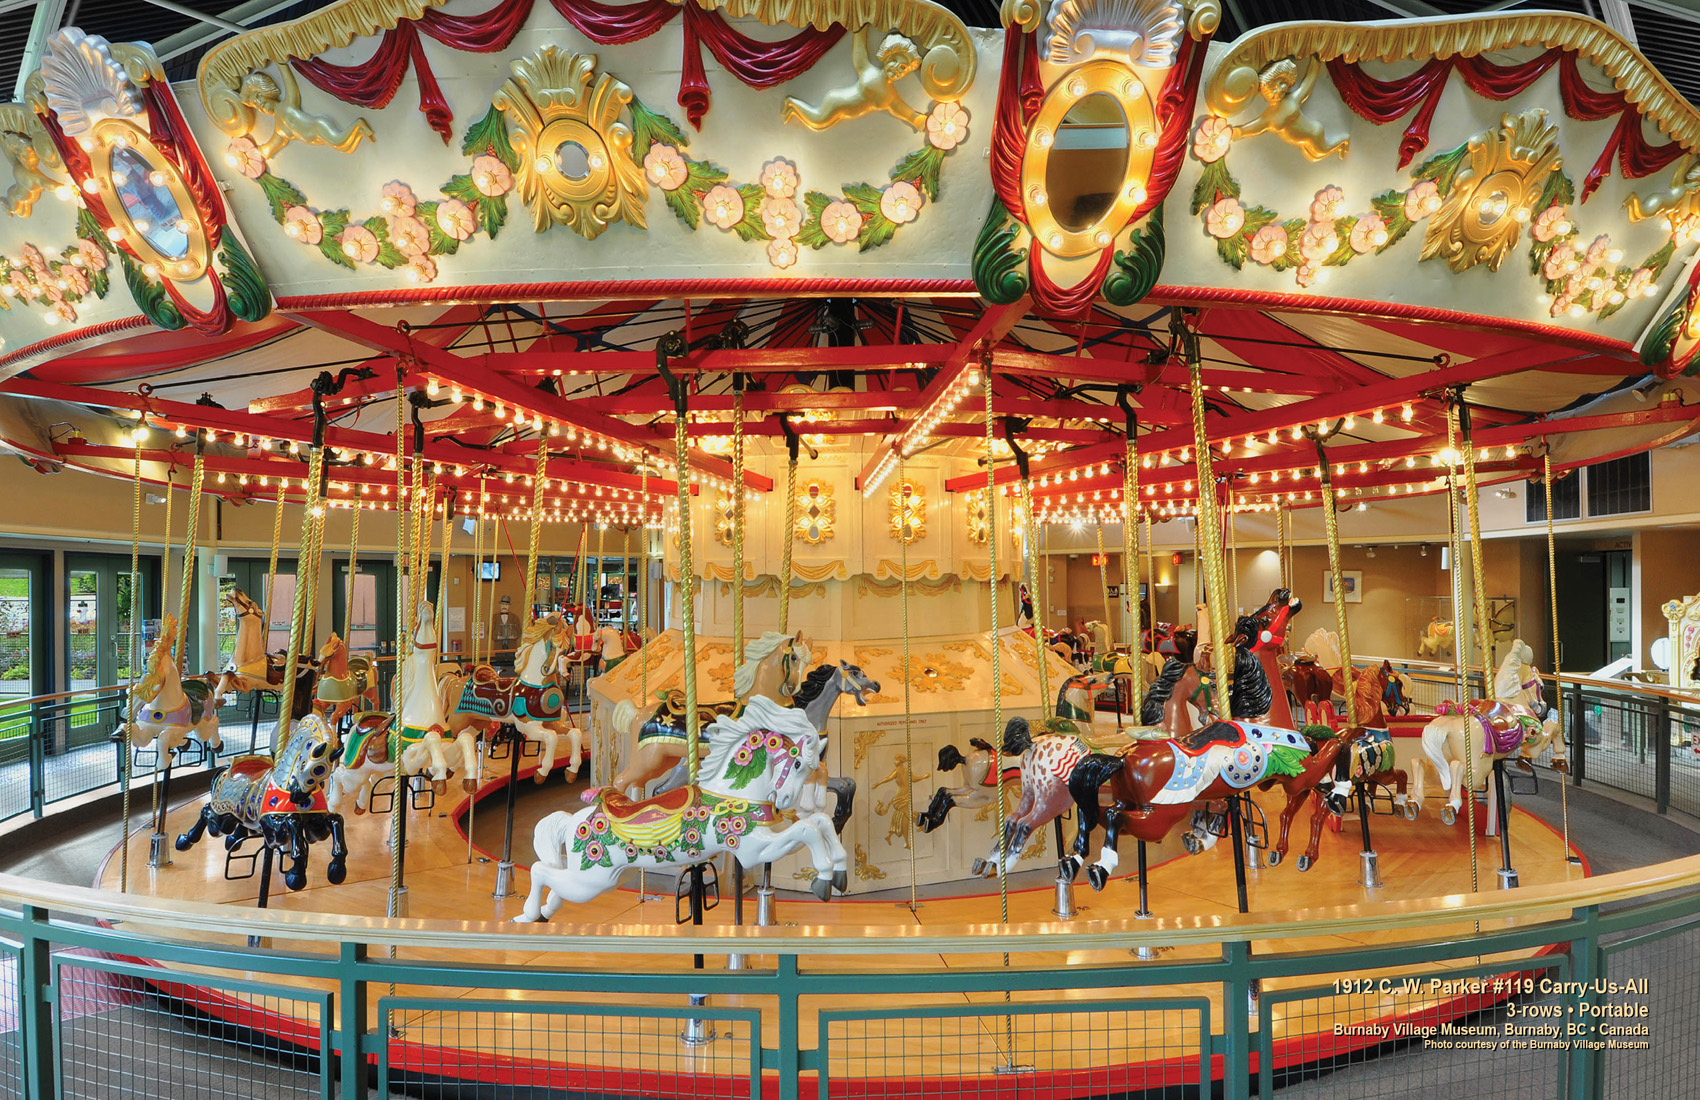 Operating Historic Carousel Galleries